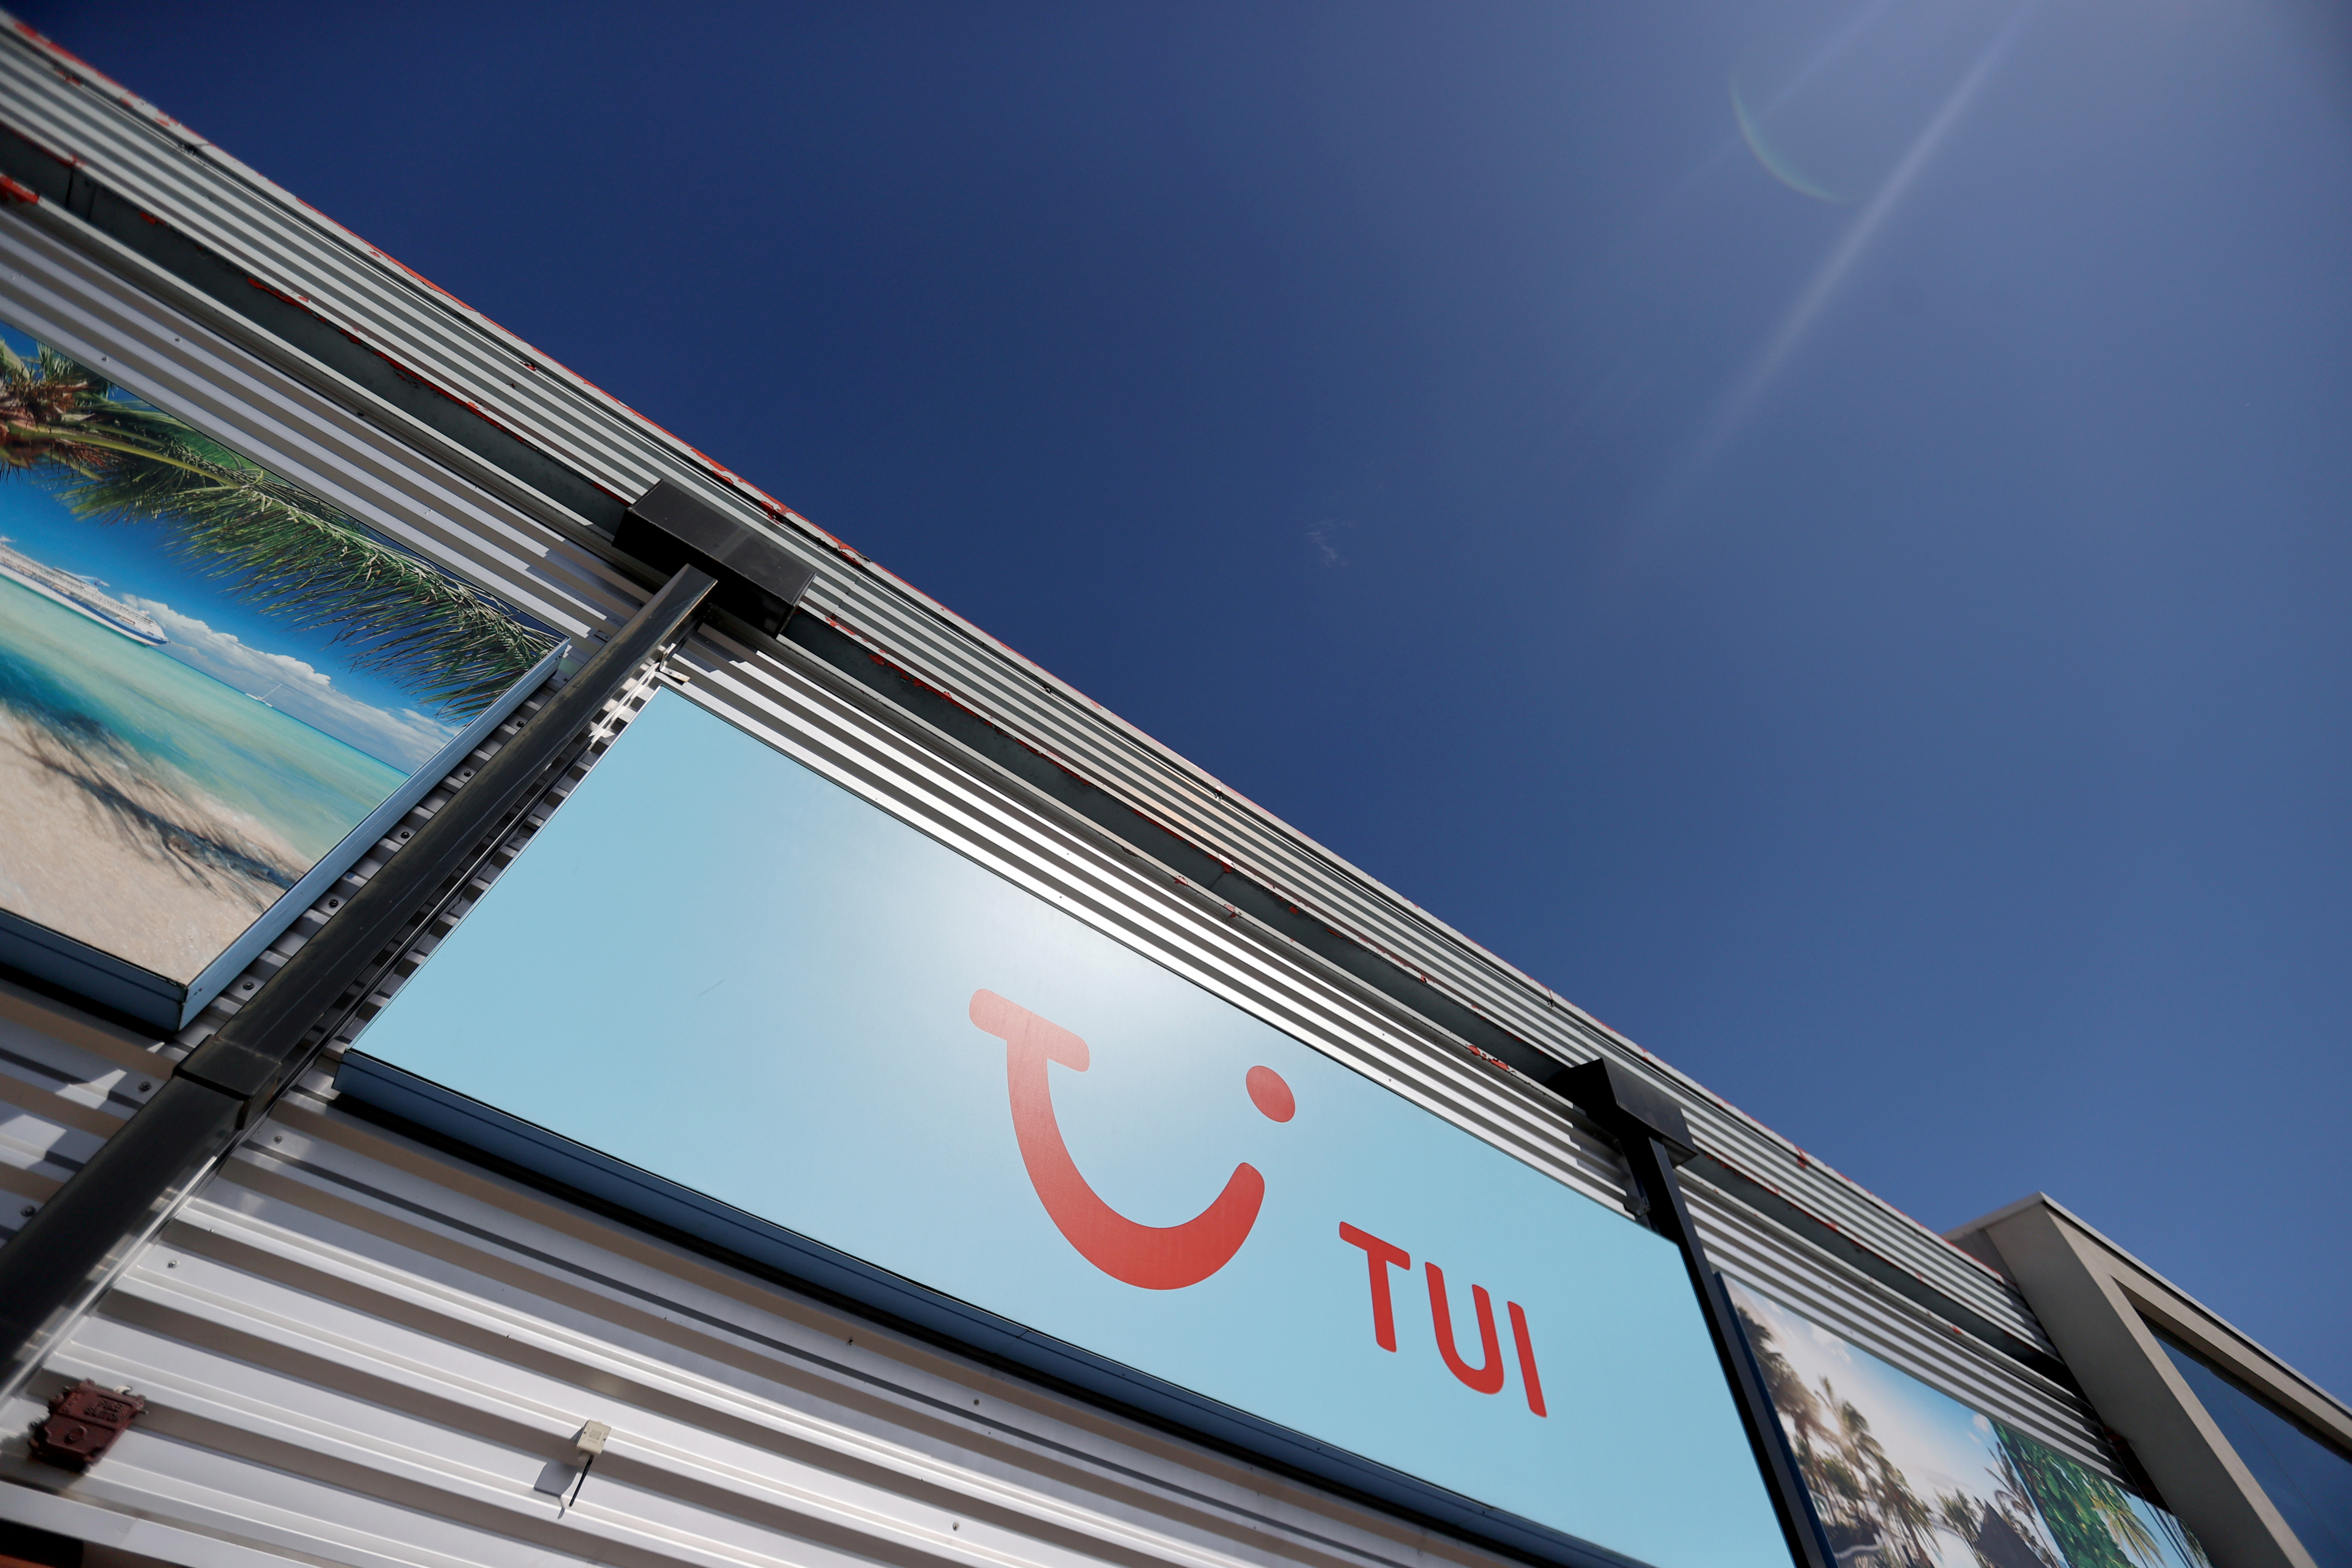 The TUI logo is seen at the TUI travel centre following the coronavirus disease (COVID-19) outbreak, in Hanley, Stoke-on-Trent, Britain, July 28, 2020. REUTERS/Carl Recine